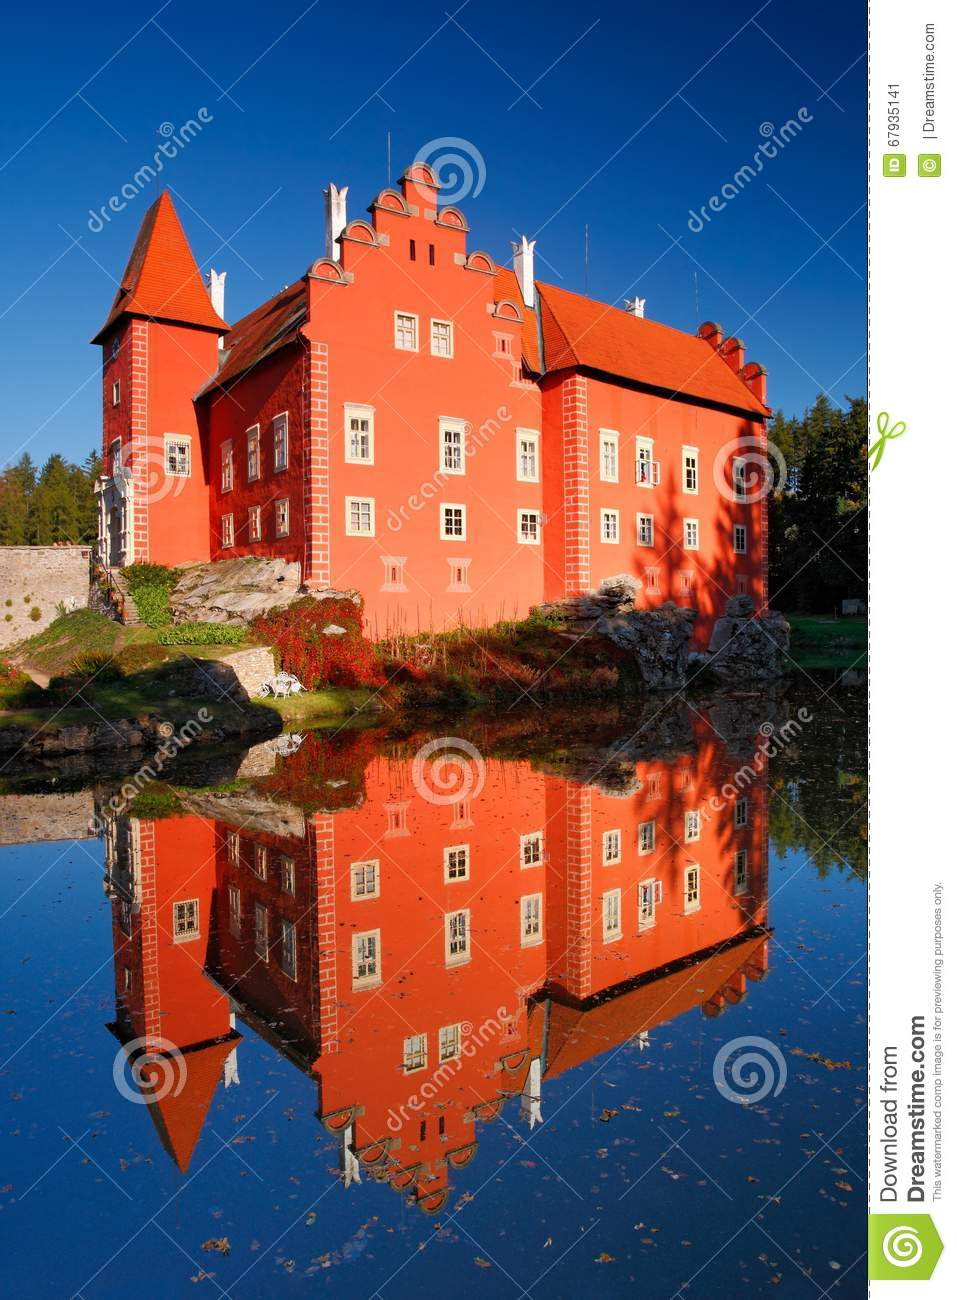 Reflection of the red castle on the lake, with dark blue sky, state castle Cervena Lhota, Czech republic